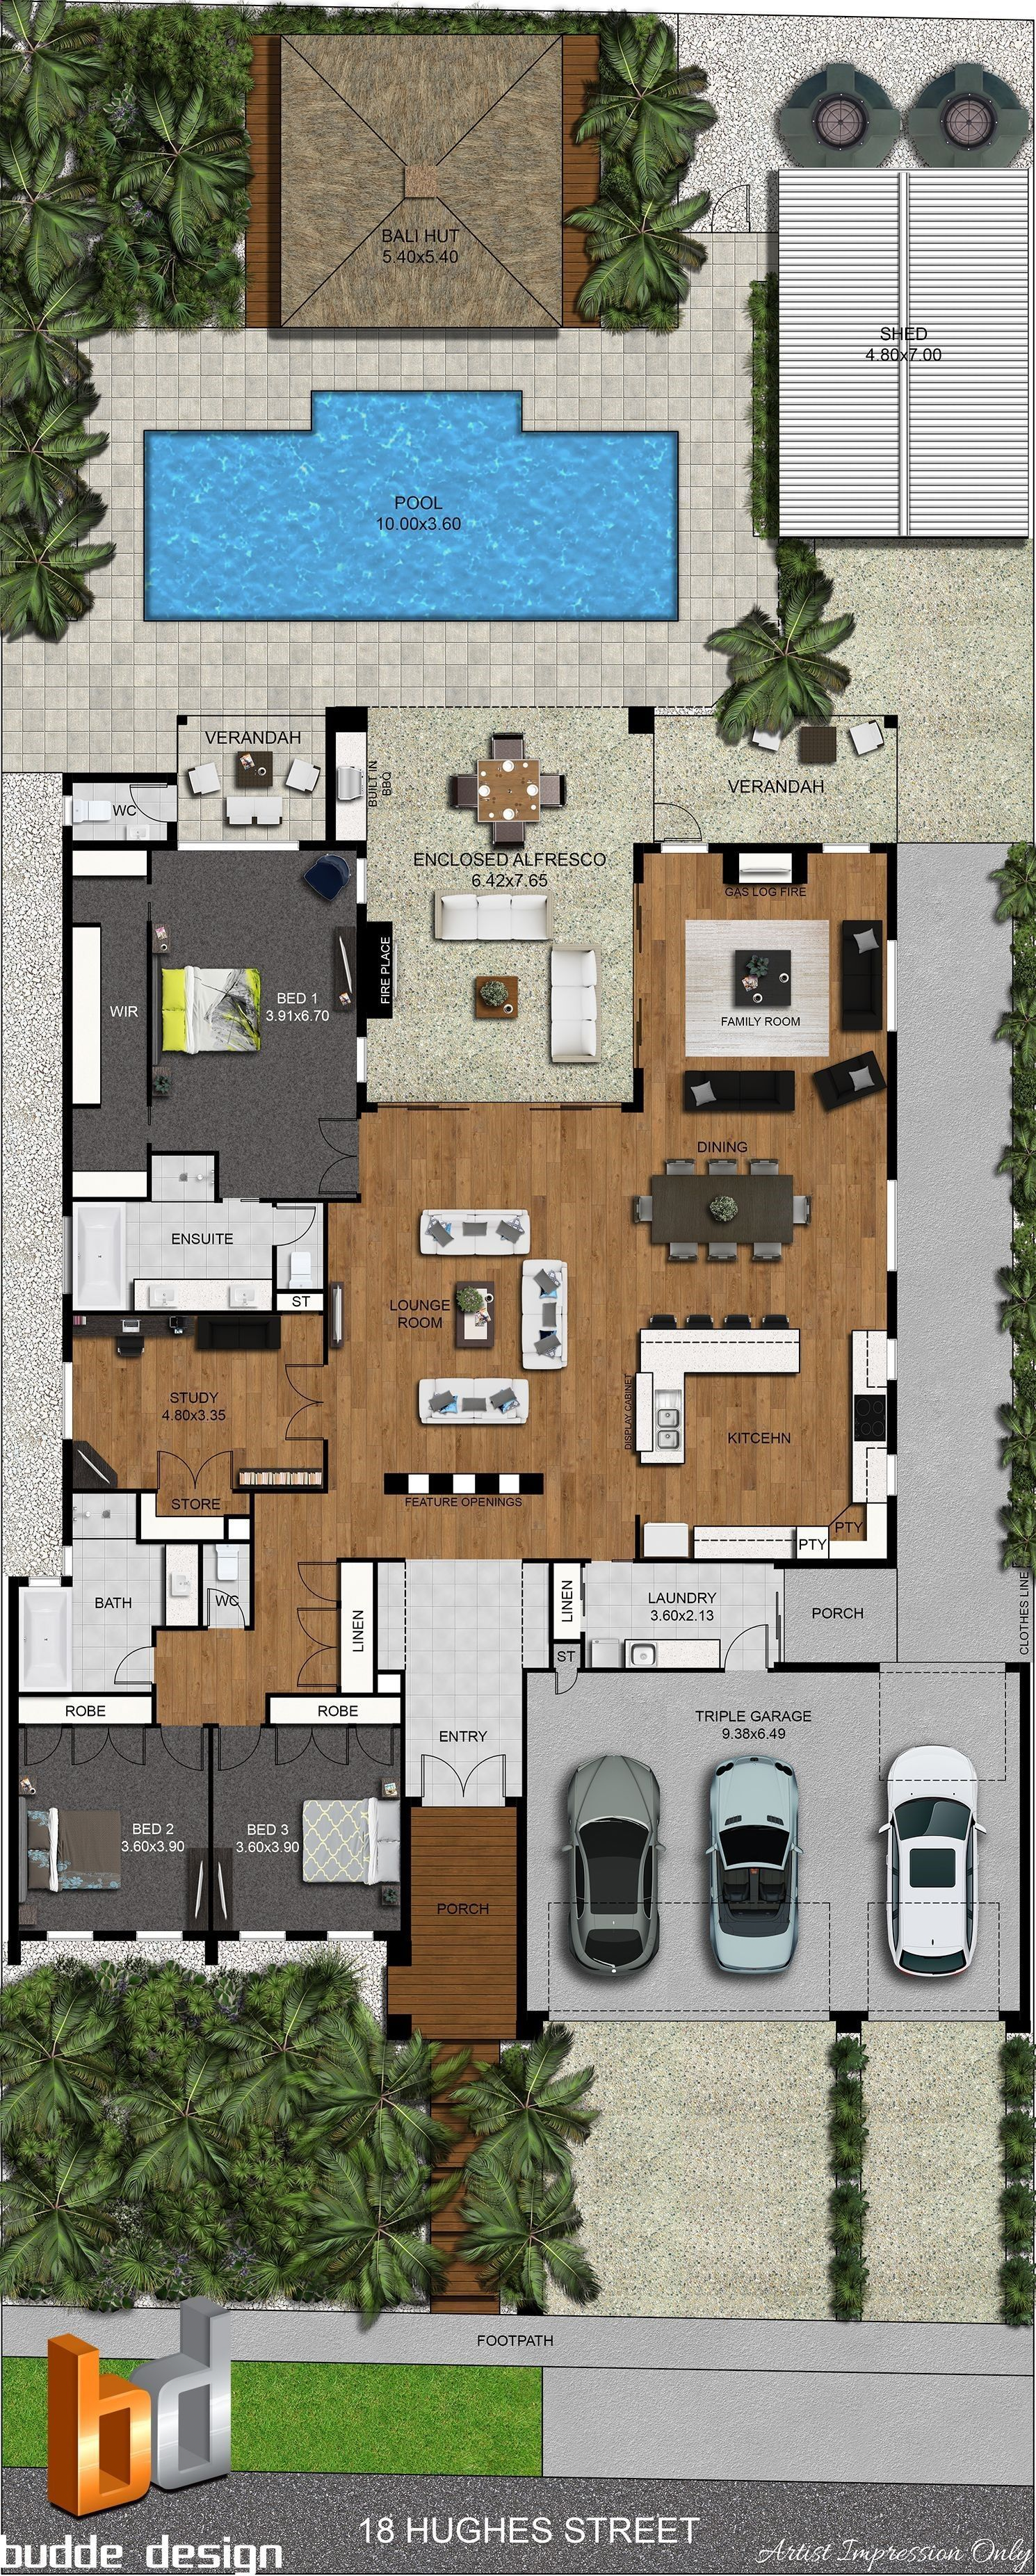 My Shed Plans 2d Colour Floor Plan And 2d Colour Site Plan Image Used For Real Estate Marketing Victoria Australia Australia House House Plans Bali Huts